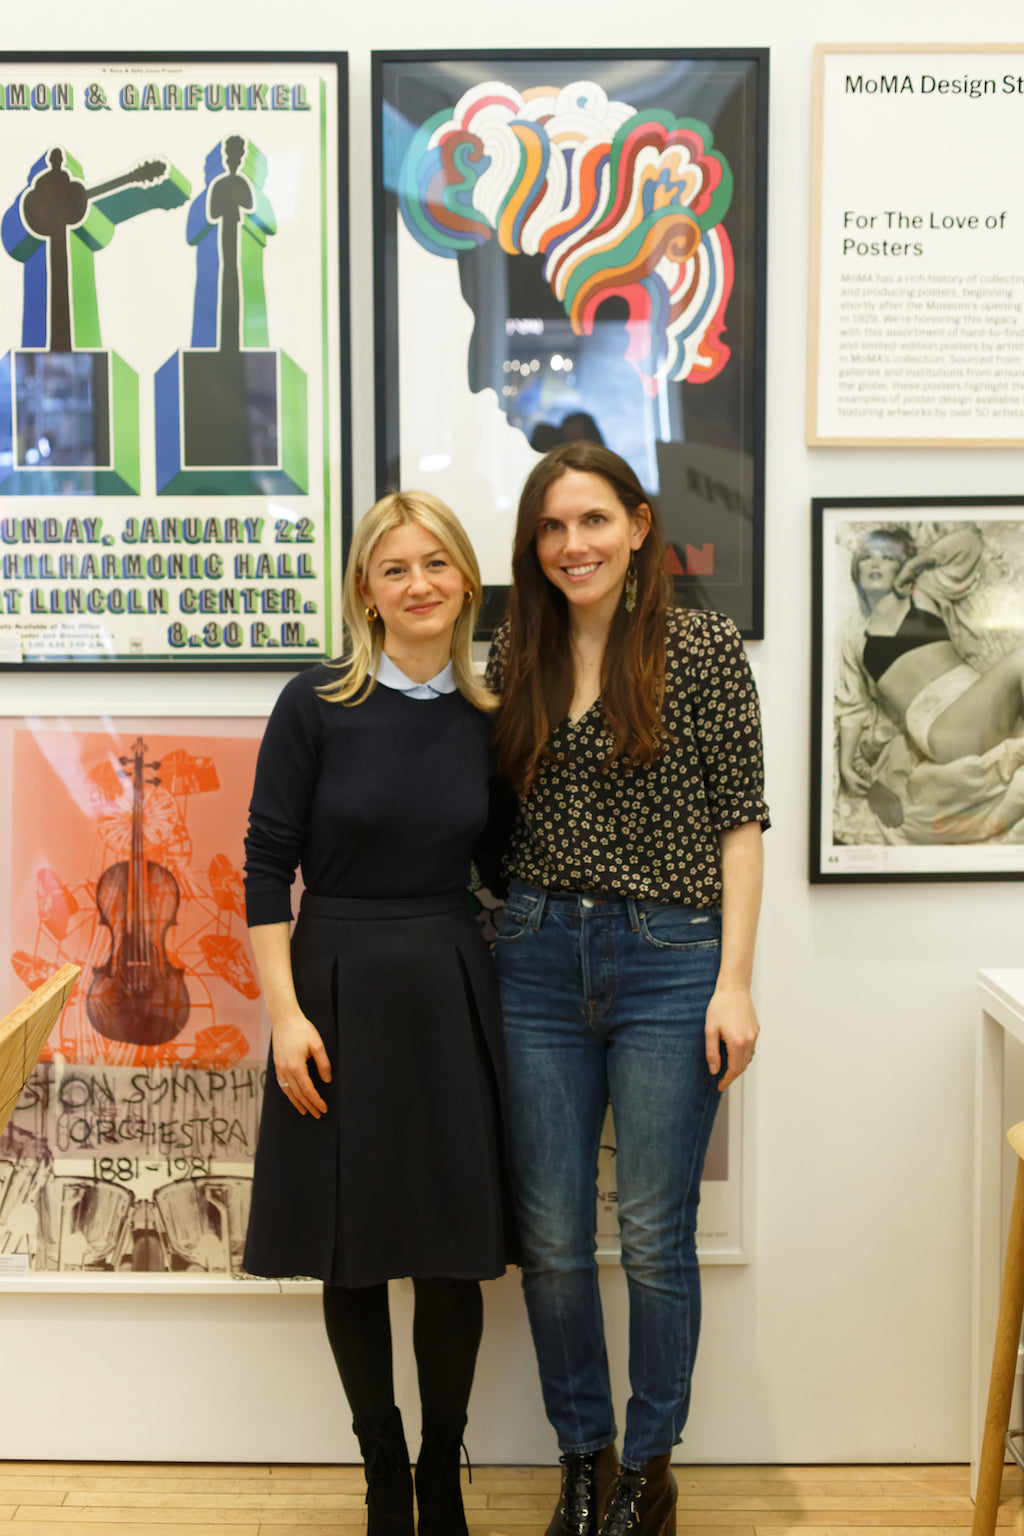 Dara Deshe Segal and Alyssa Kapito at MoMA Design Store in Soho